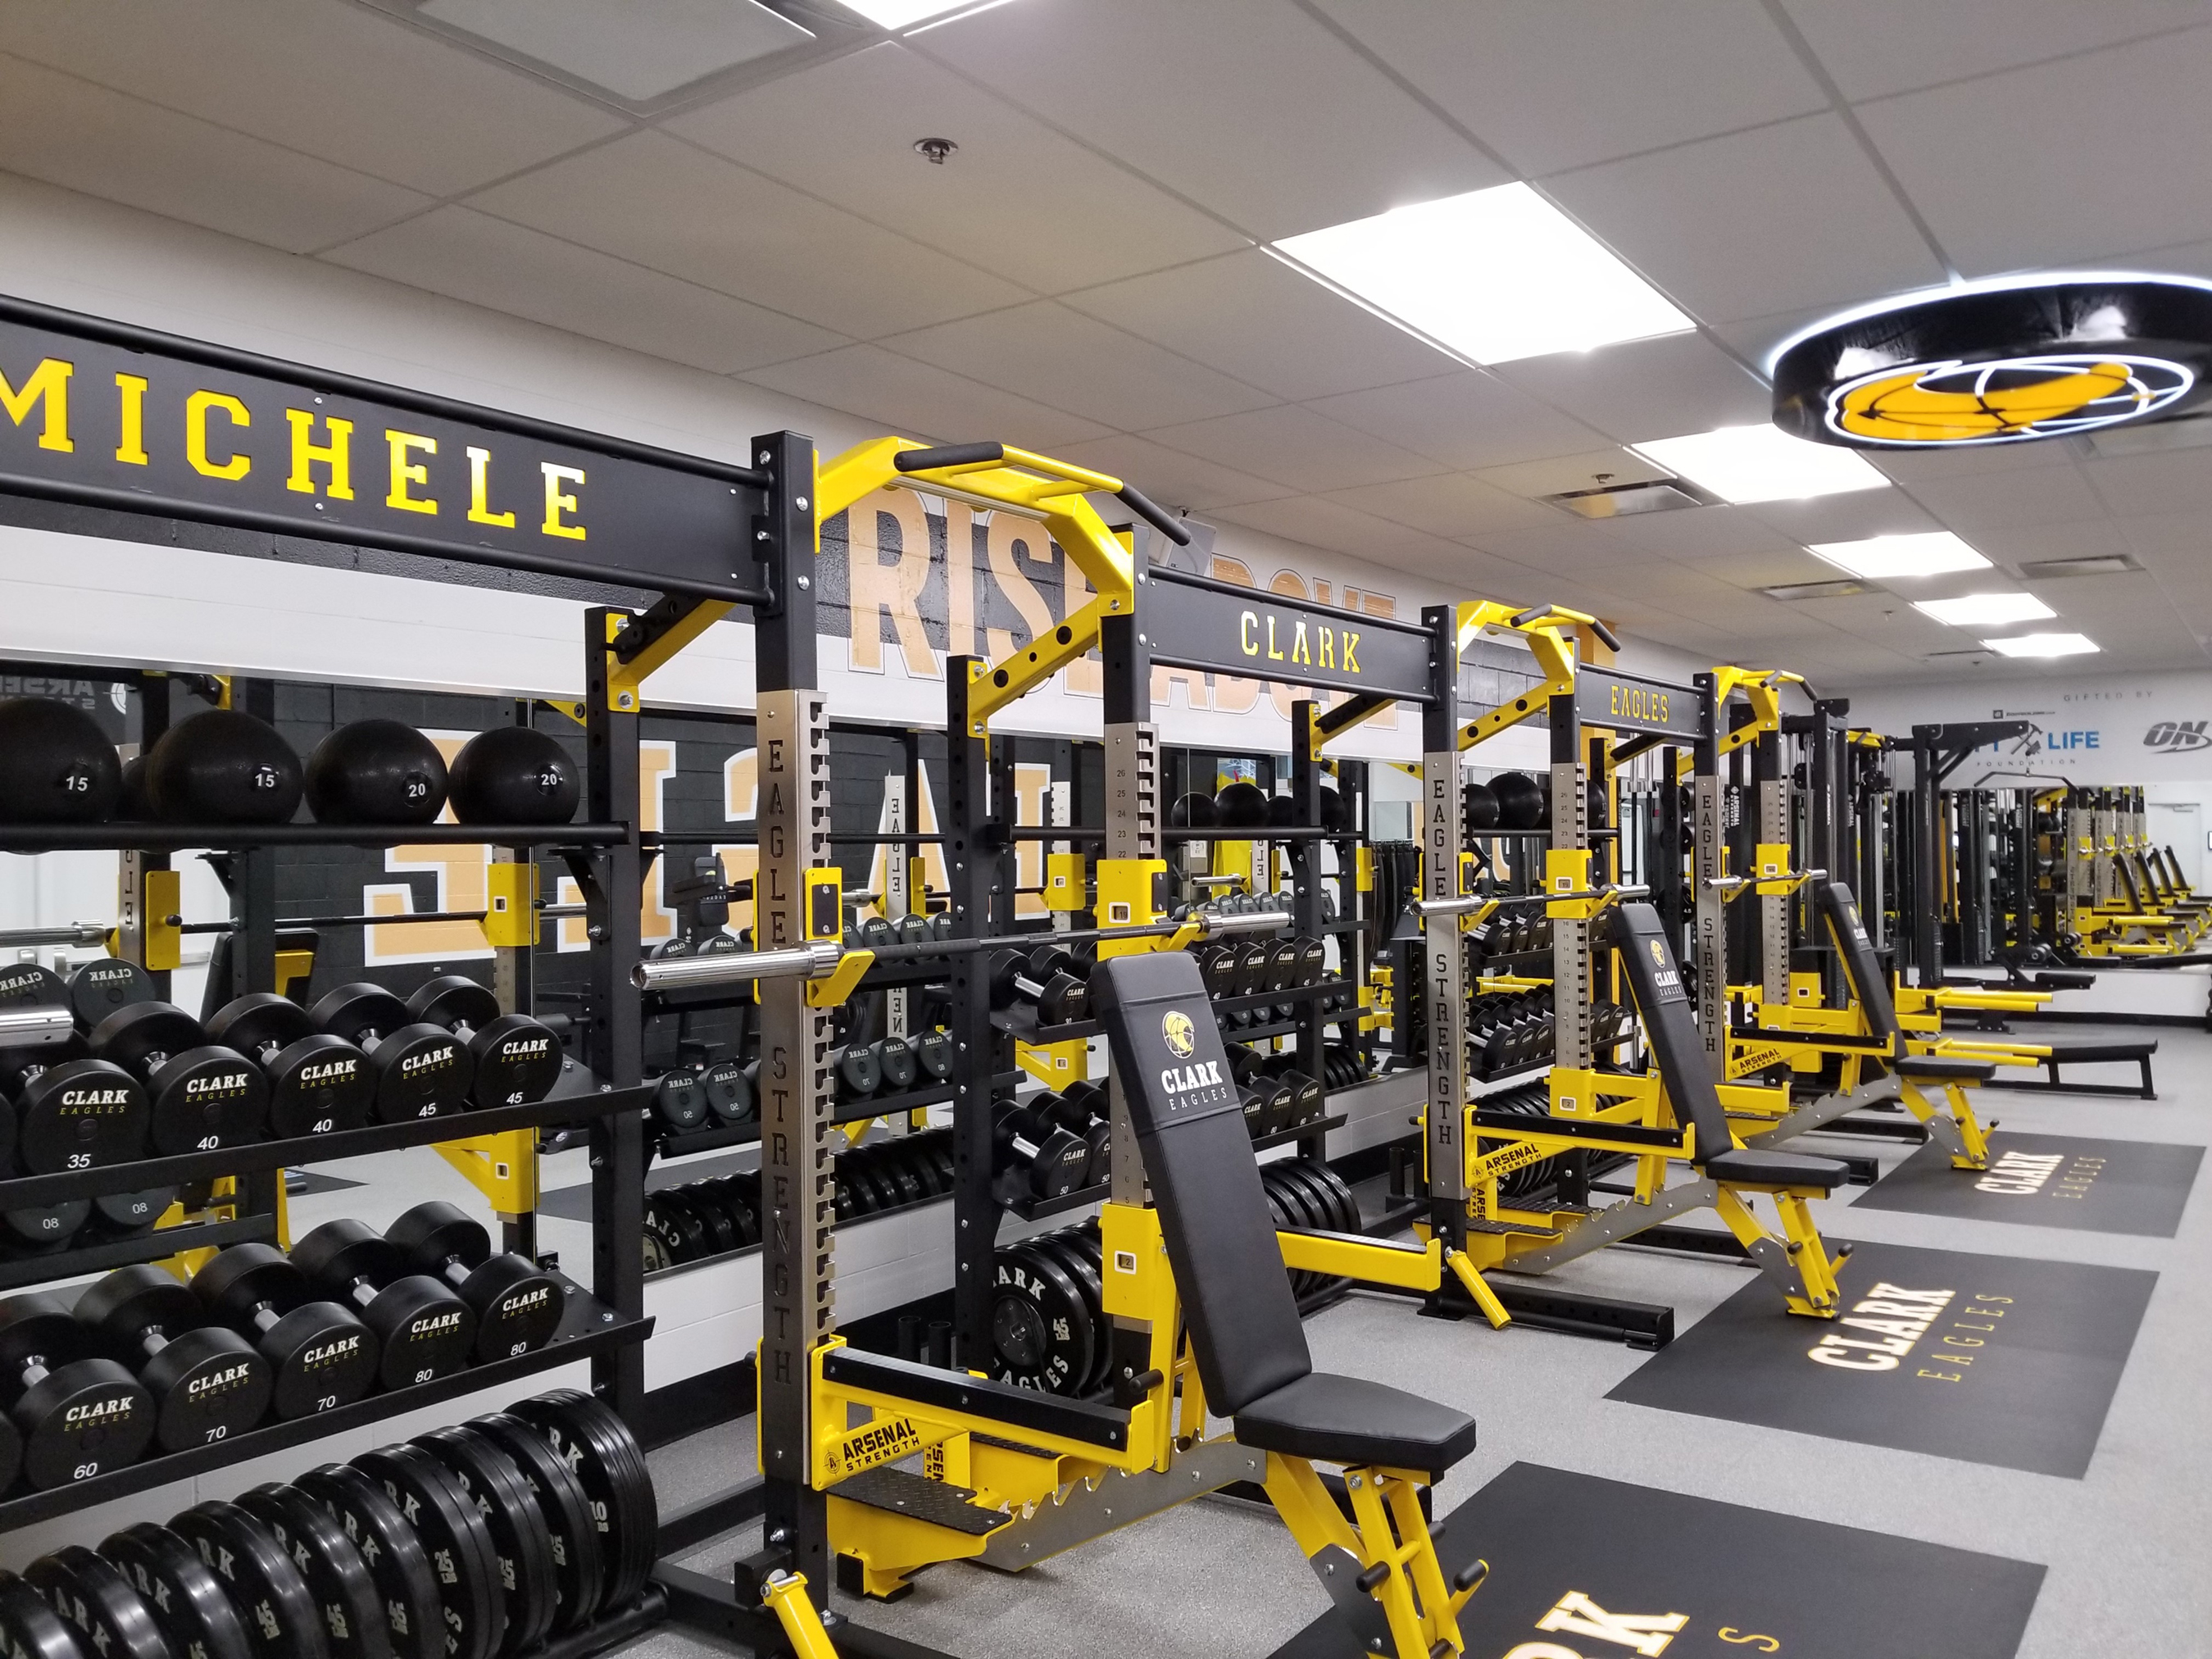 Lift Life and Optimum Nutrition reveal the newly renovated Michele Clark High School on Sept. 28